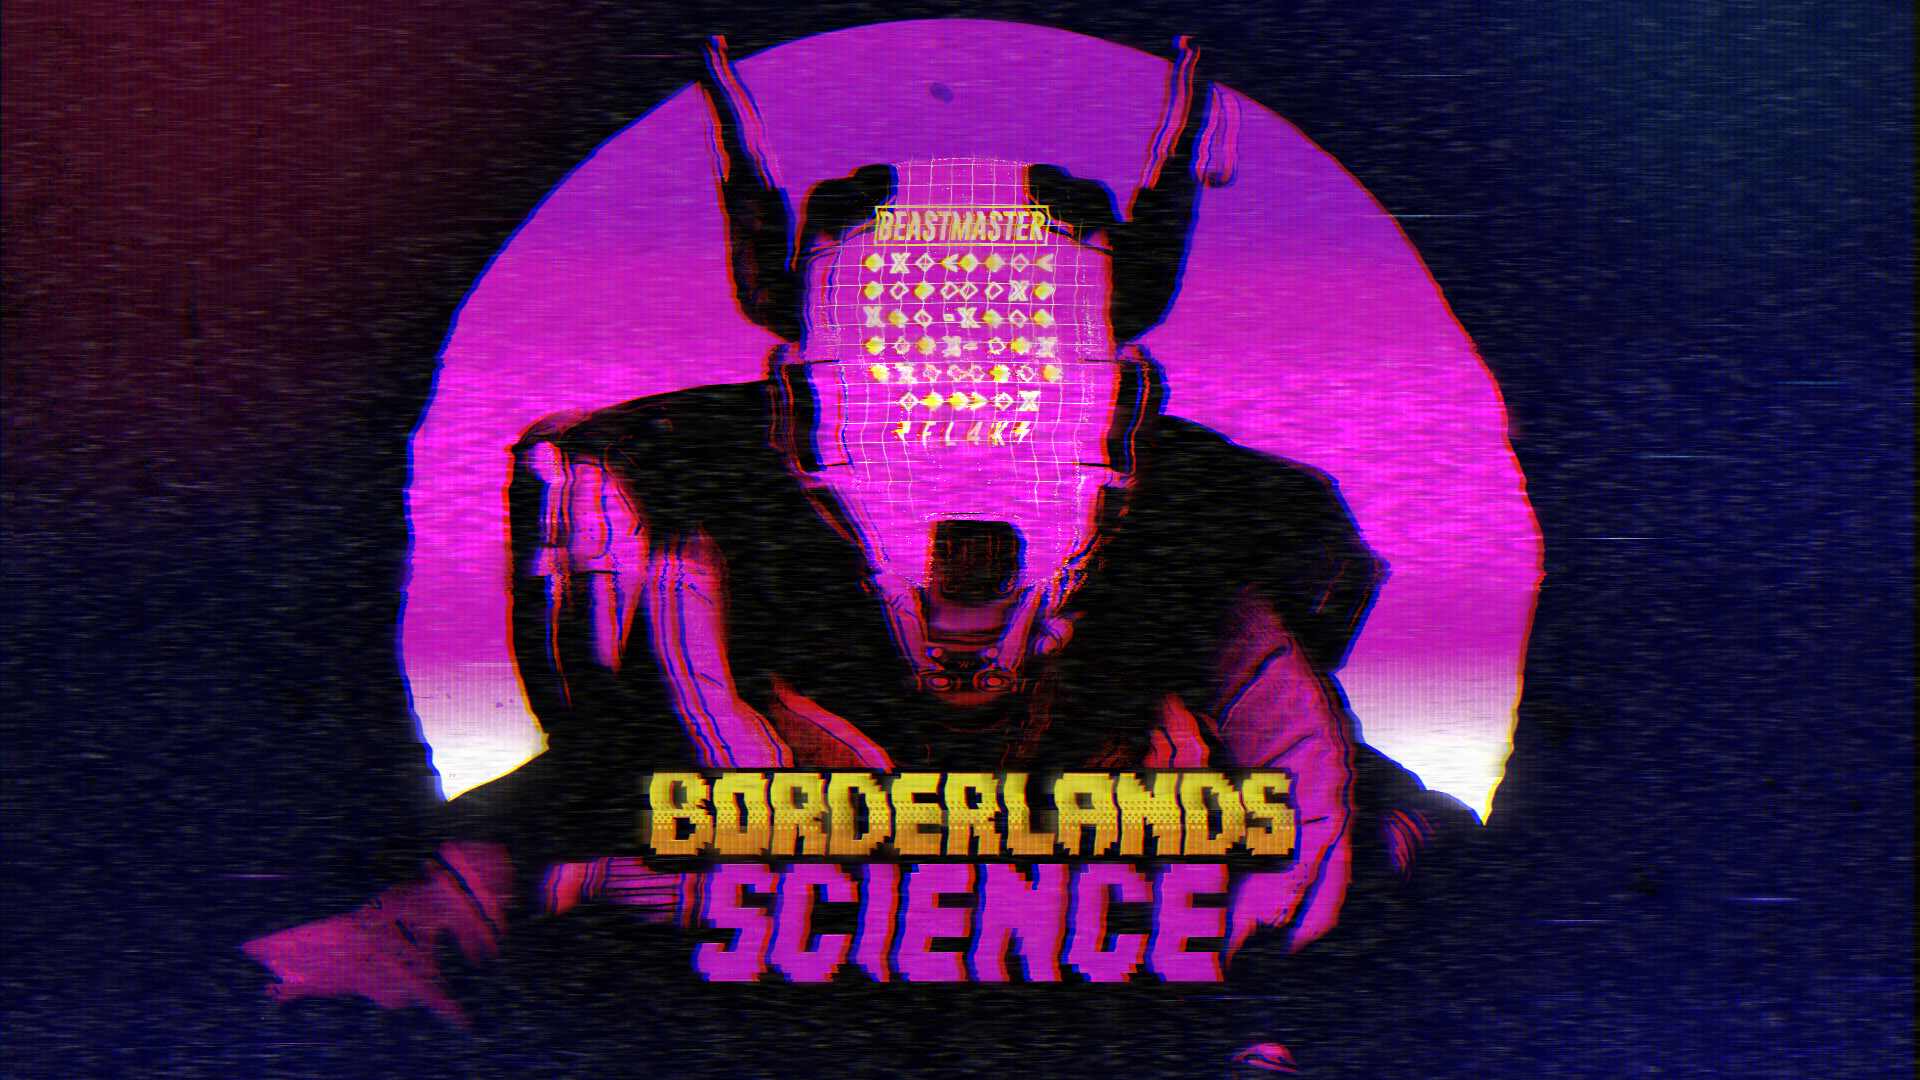 Borderlands 3 launches Borderlands Science minigame to help advance medical research